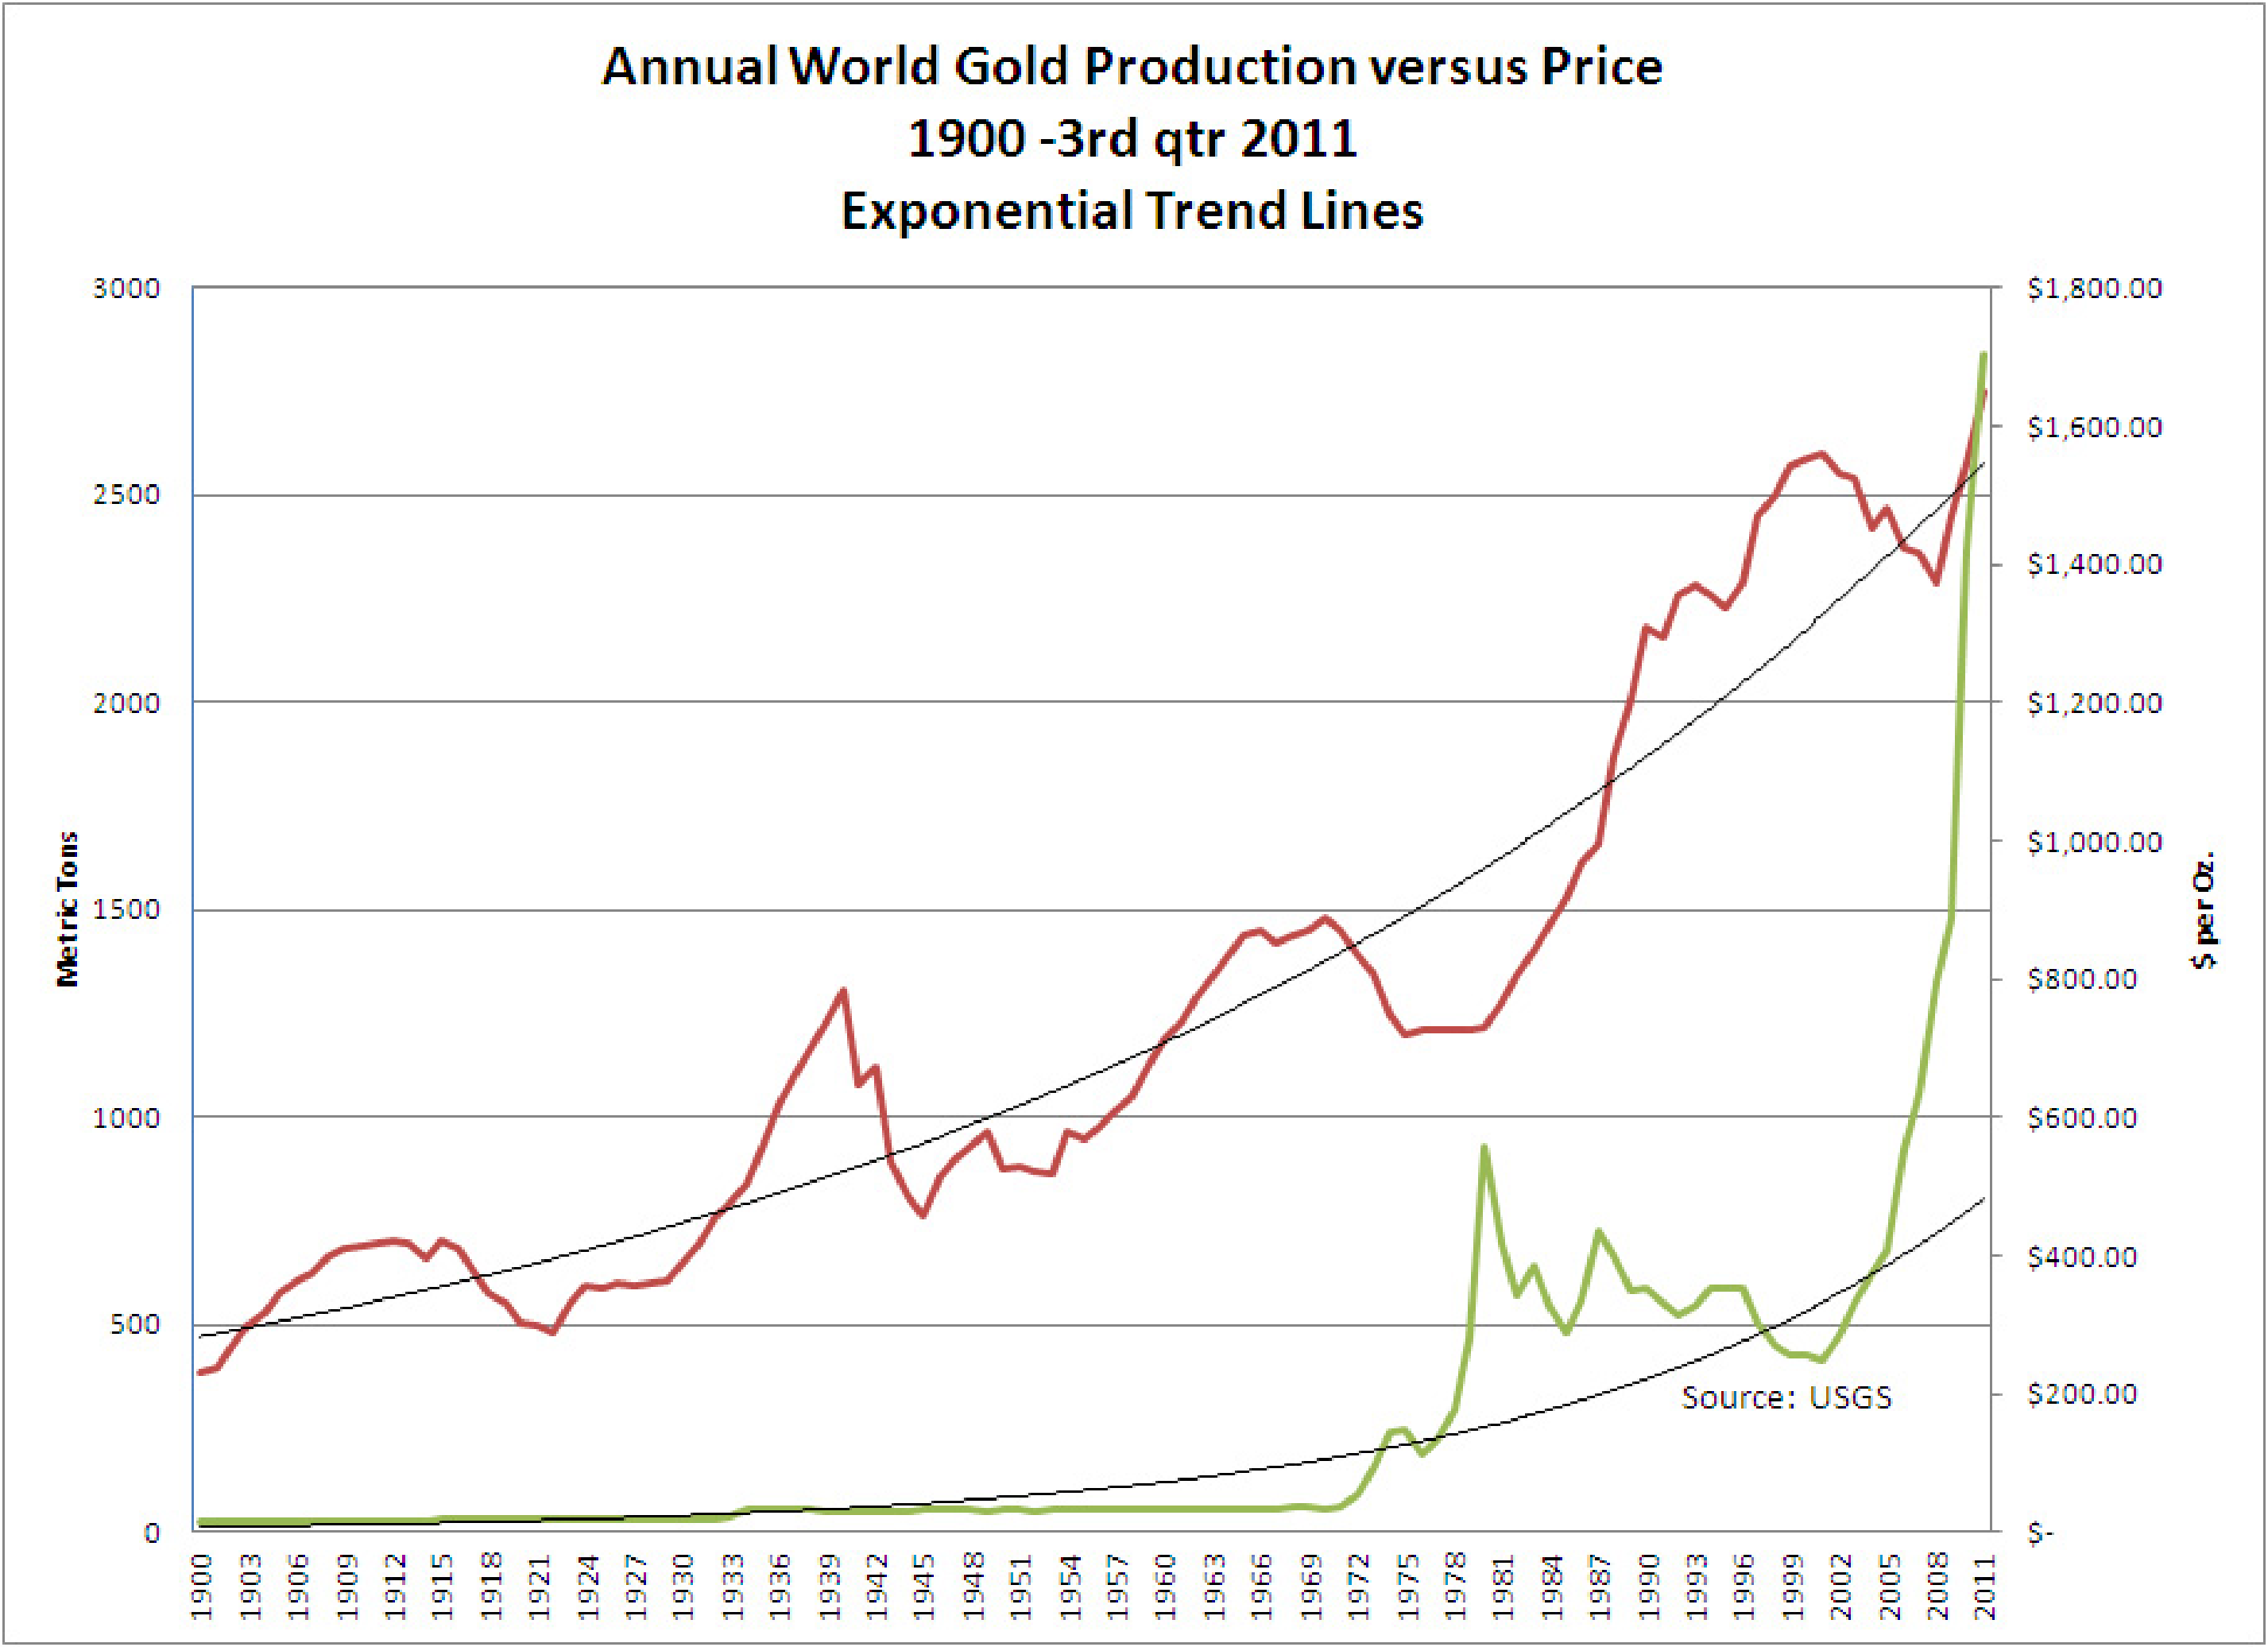 Annual Gold Production